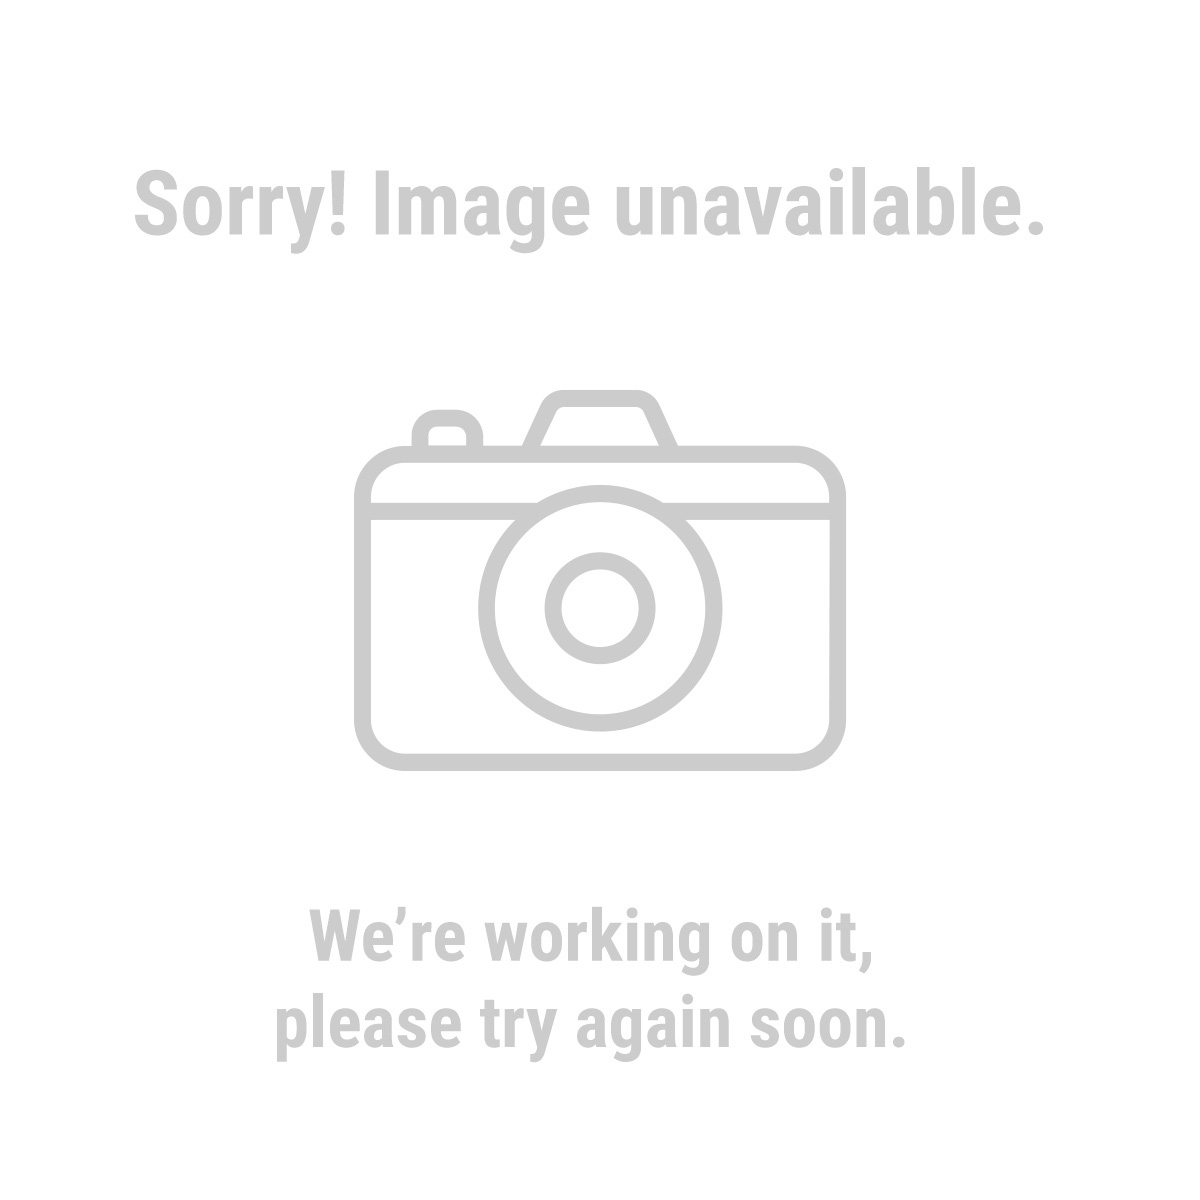 Pittsburgh 69878 3/4 in. Jumbo Heavy Duty SAE Socket Set 20 Pc